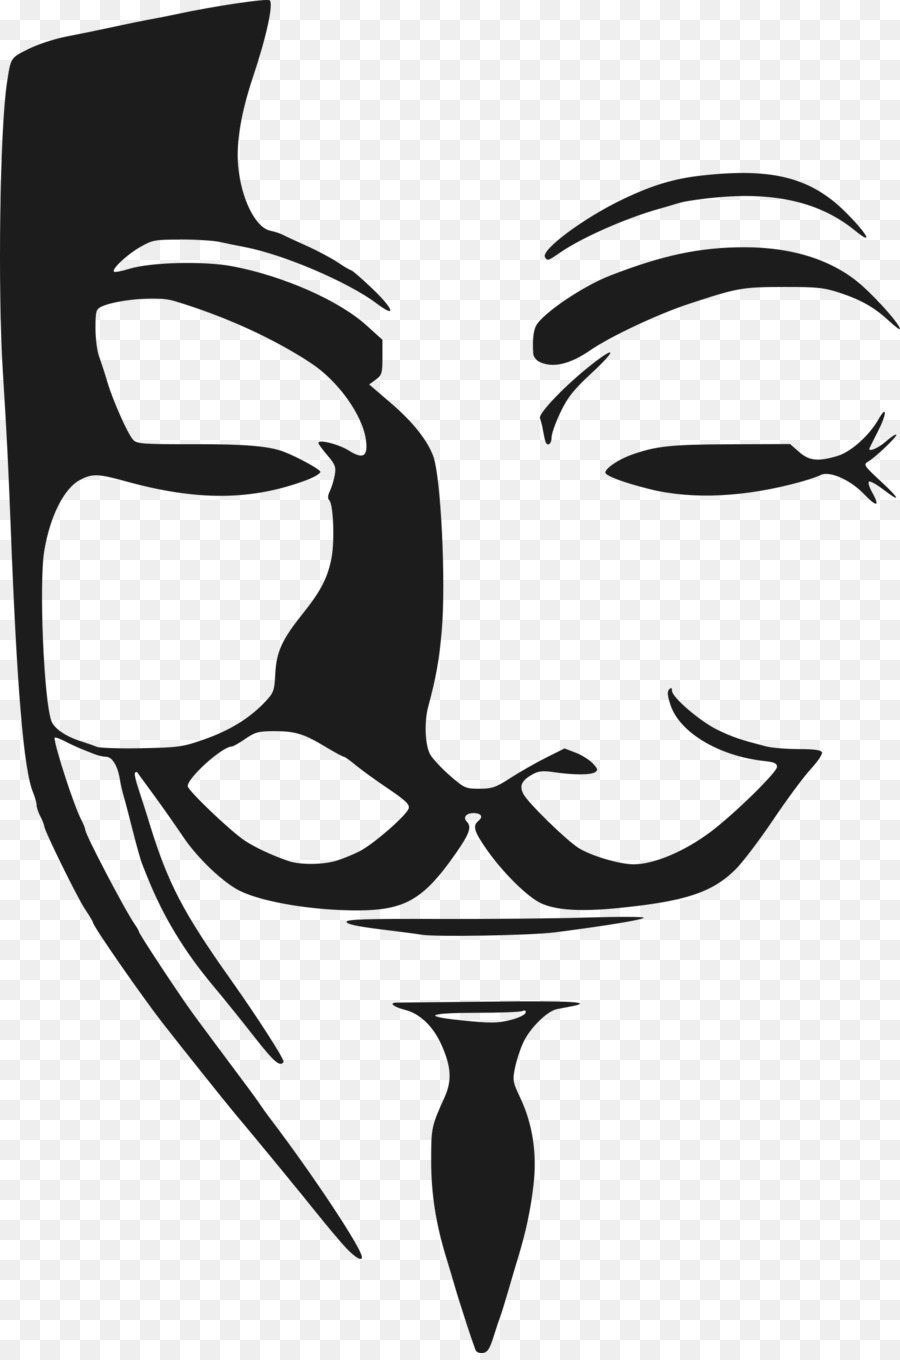 Guy fawkes mask clipart picture freeuse V For Vendetta Clipart 6 - 900 X 1360 Free Clip Art stock ... picture freeuse